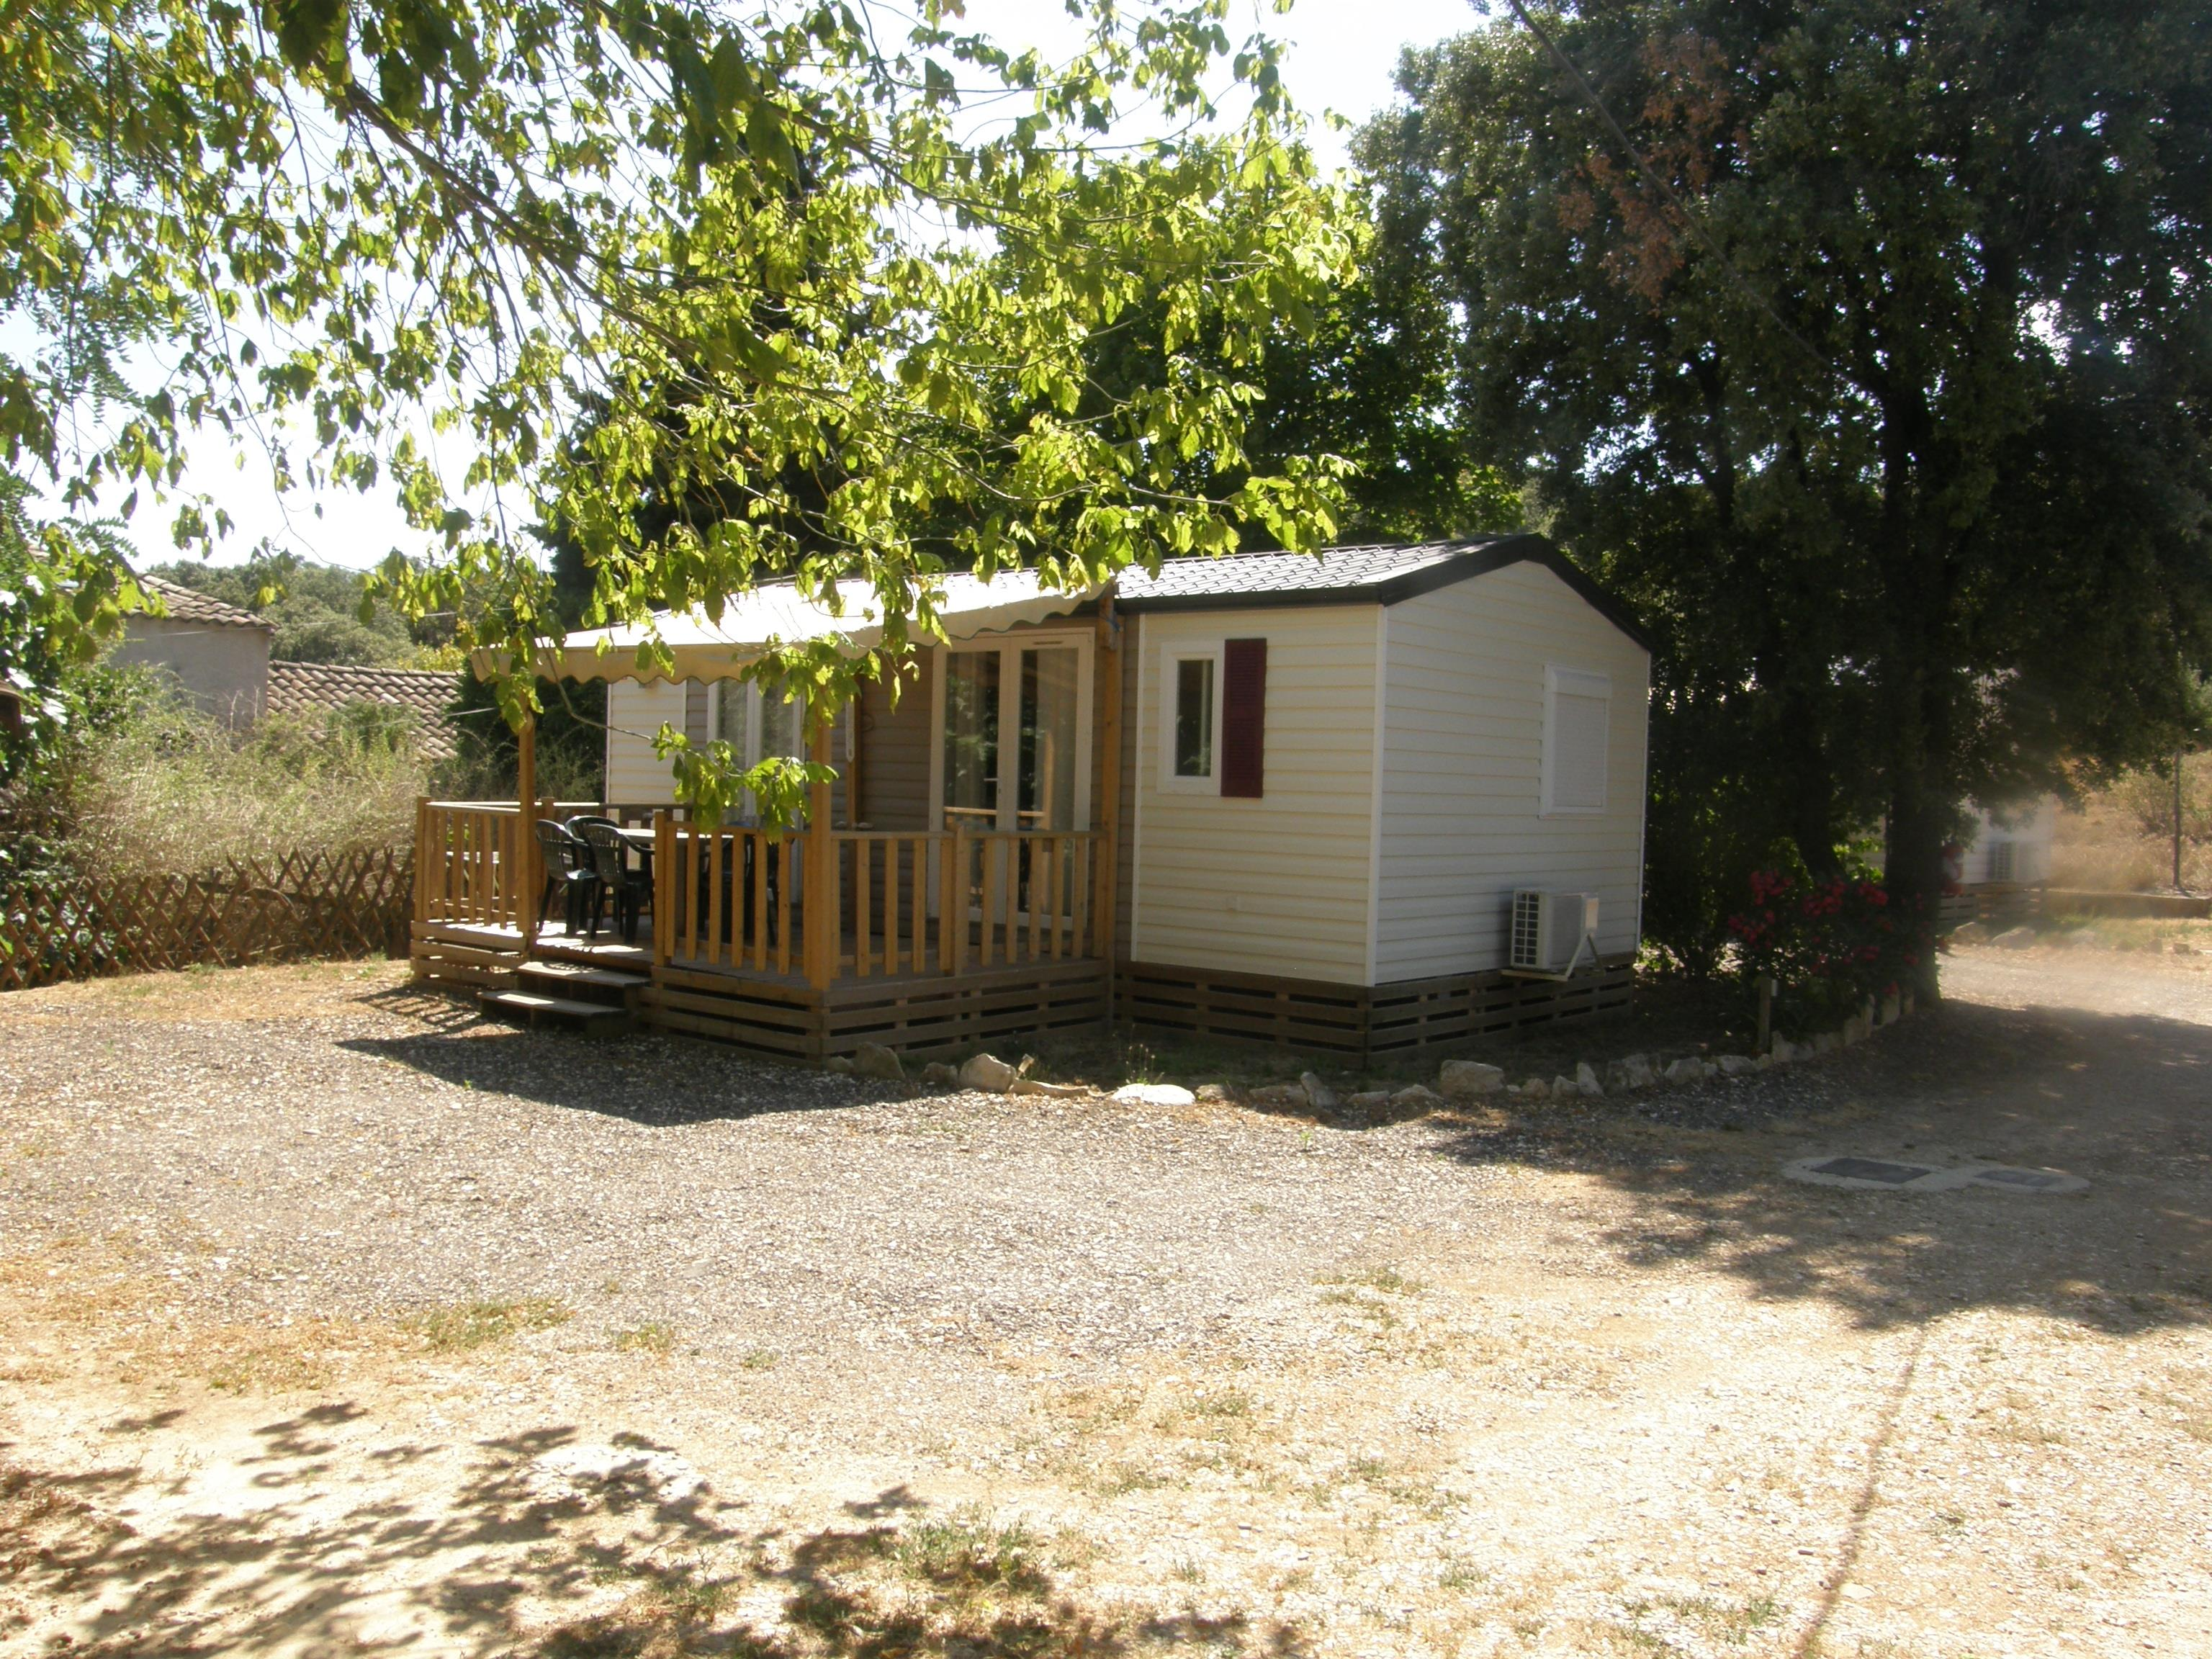 Accommodation - Mobile Home Evolution 31M² 2 Bedrooms Air-Conditioning - CAMPING LES TRUFFIERES***